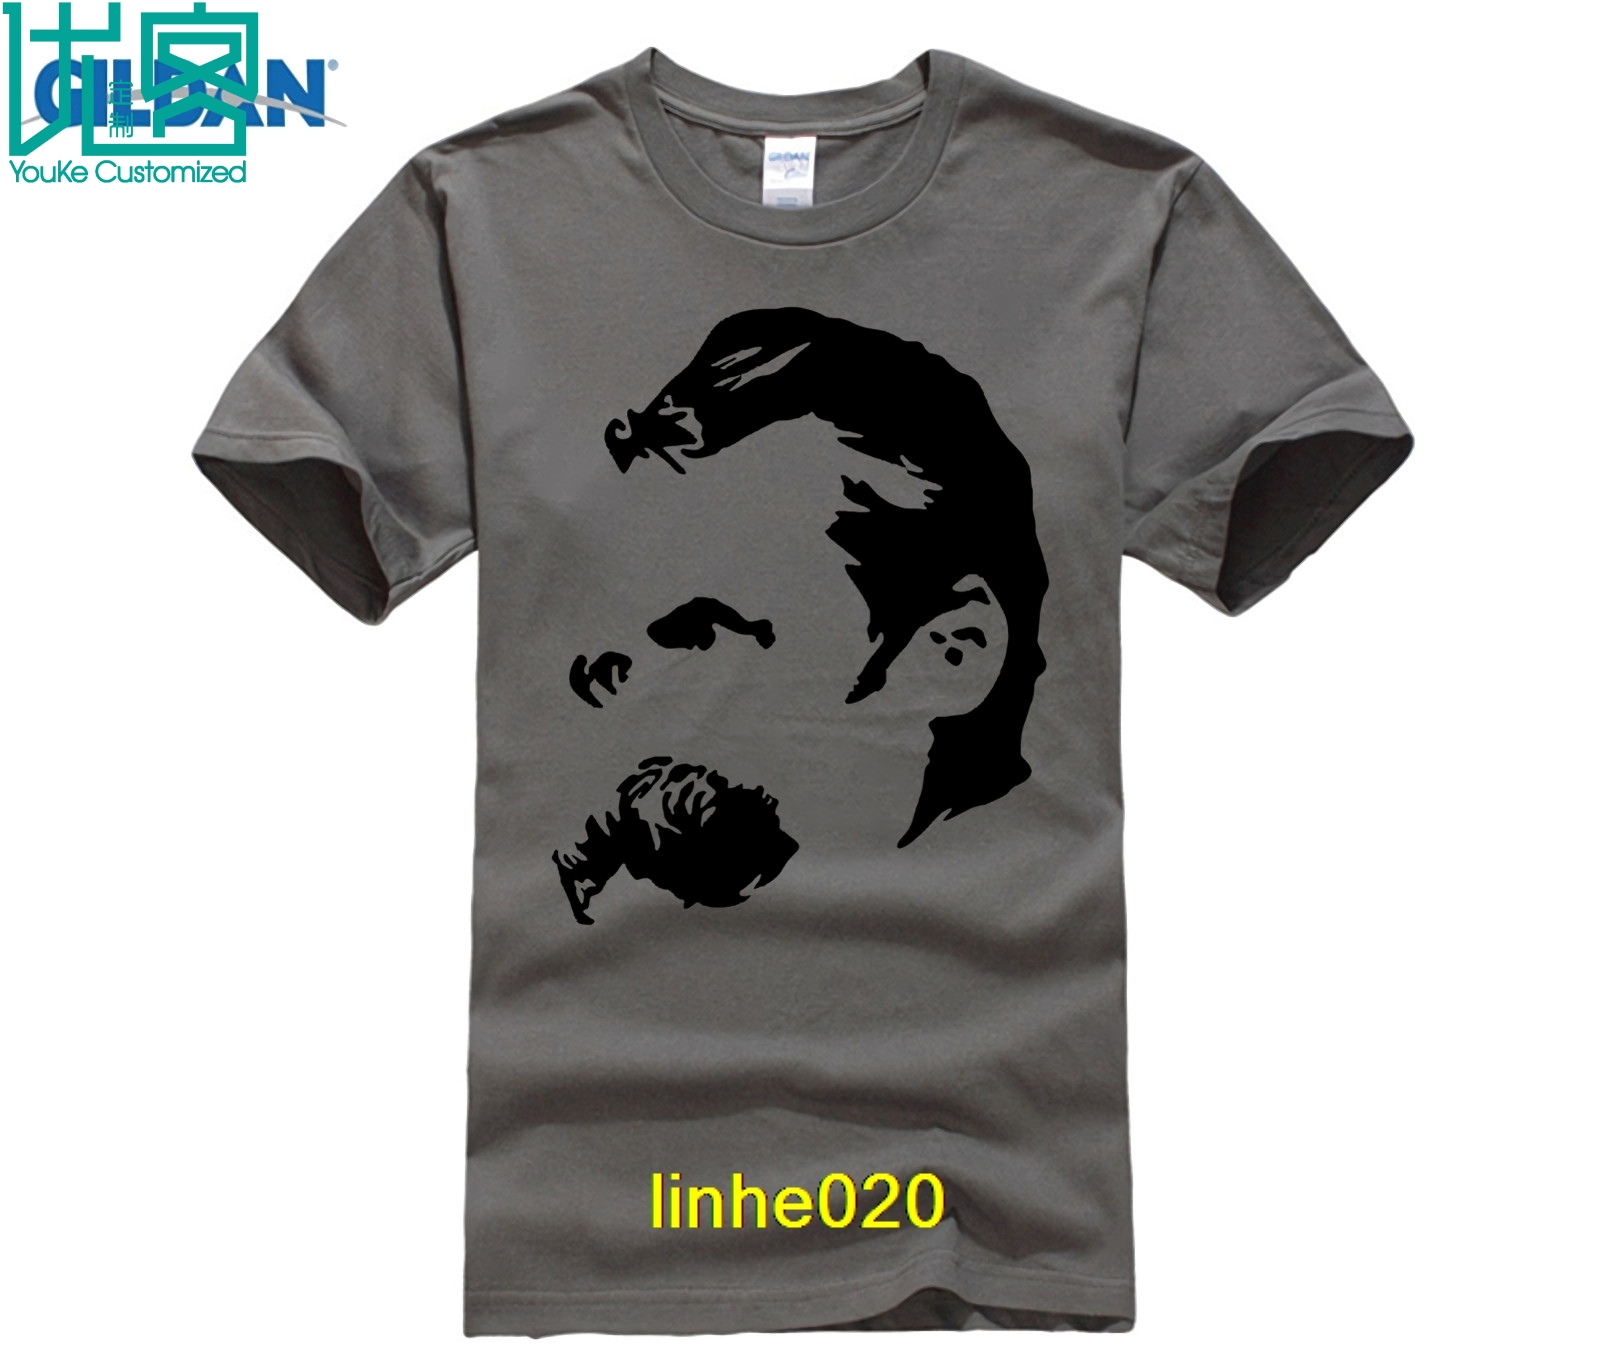 Friedrich Nietzsche Men's Premium Cotton Tee Shirts Short-sleeve Designer Shirts